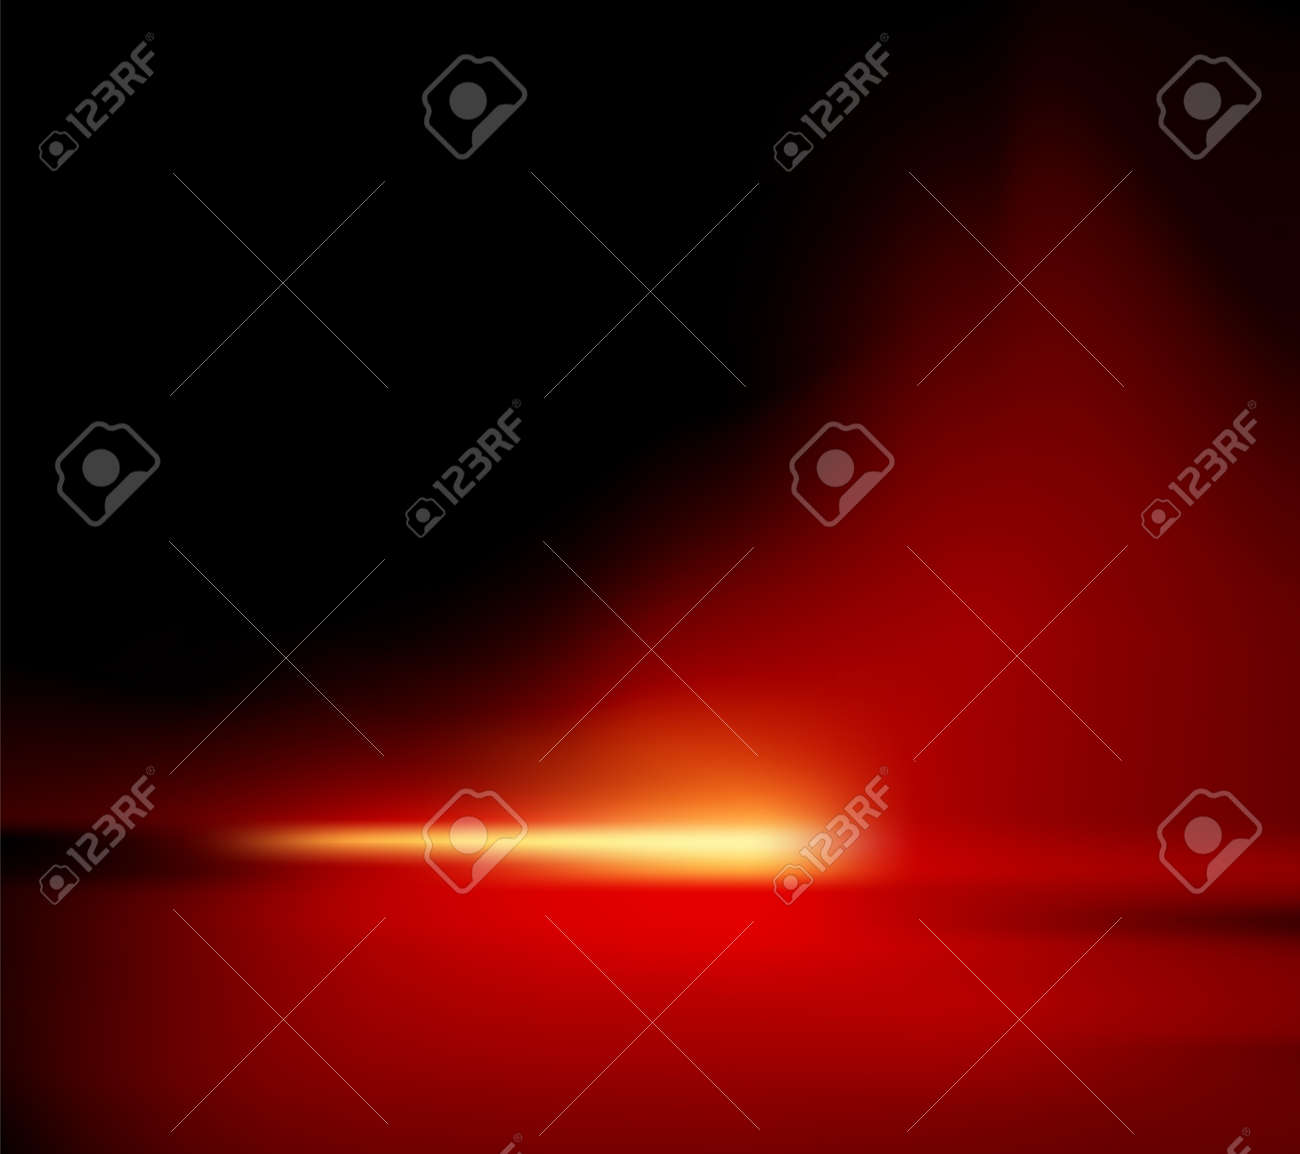 Abstract background - red horizon with glowing sunlight - also suitable for Christmas designs - 10468483